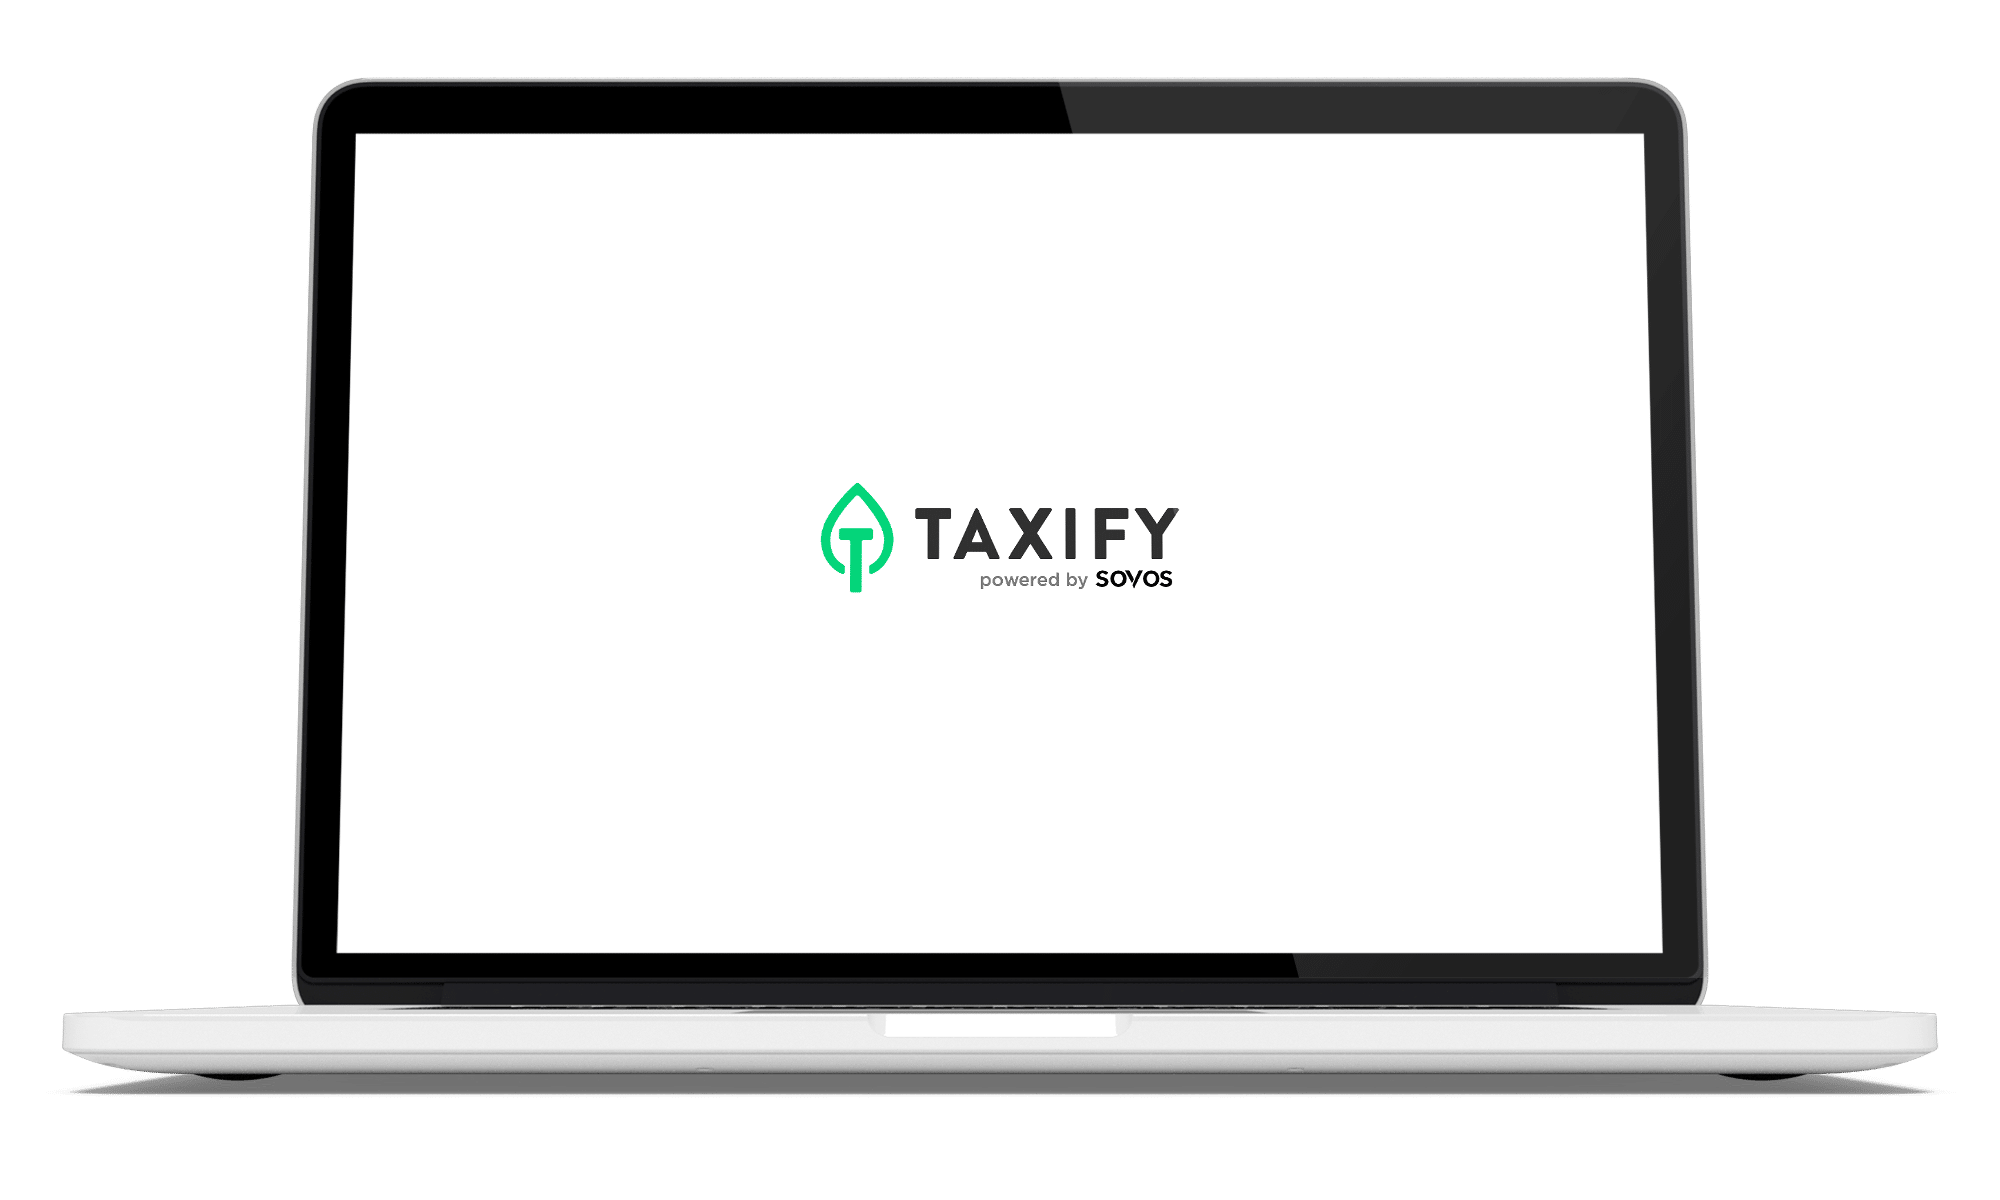 Taxify - Case Study